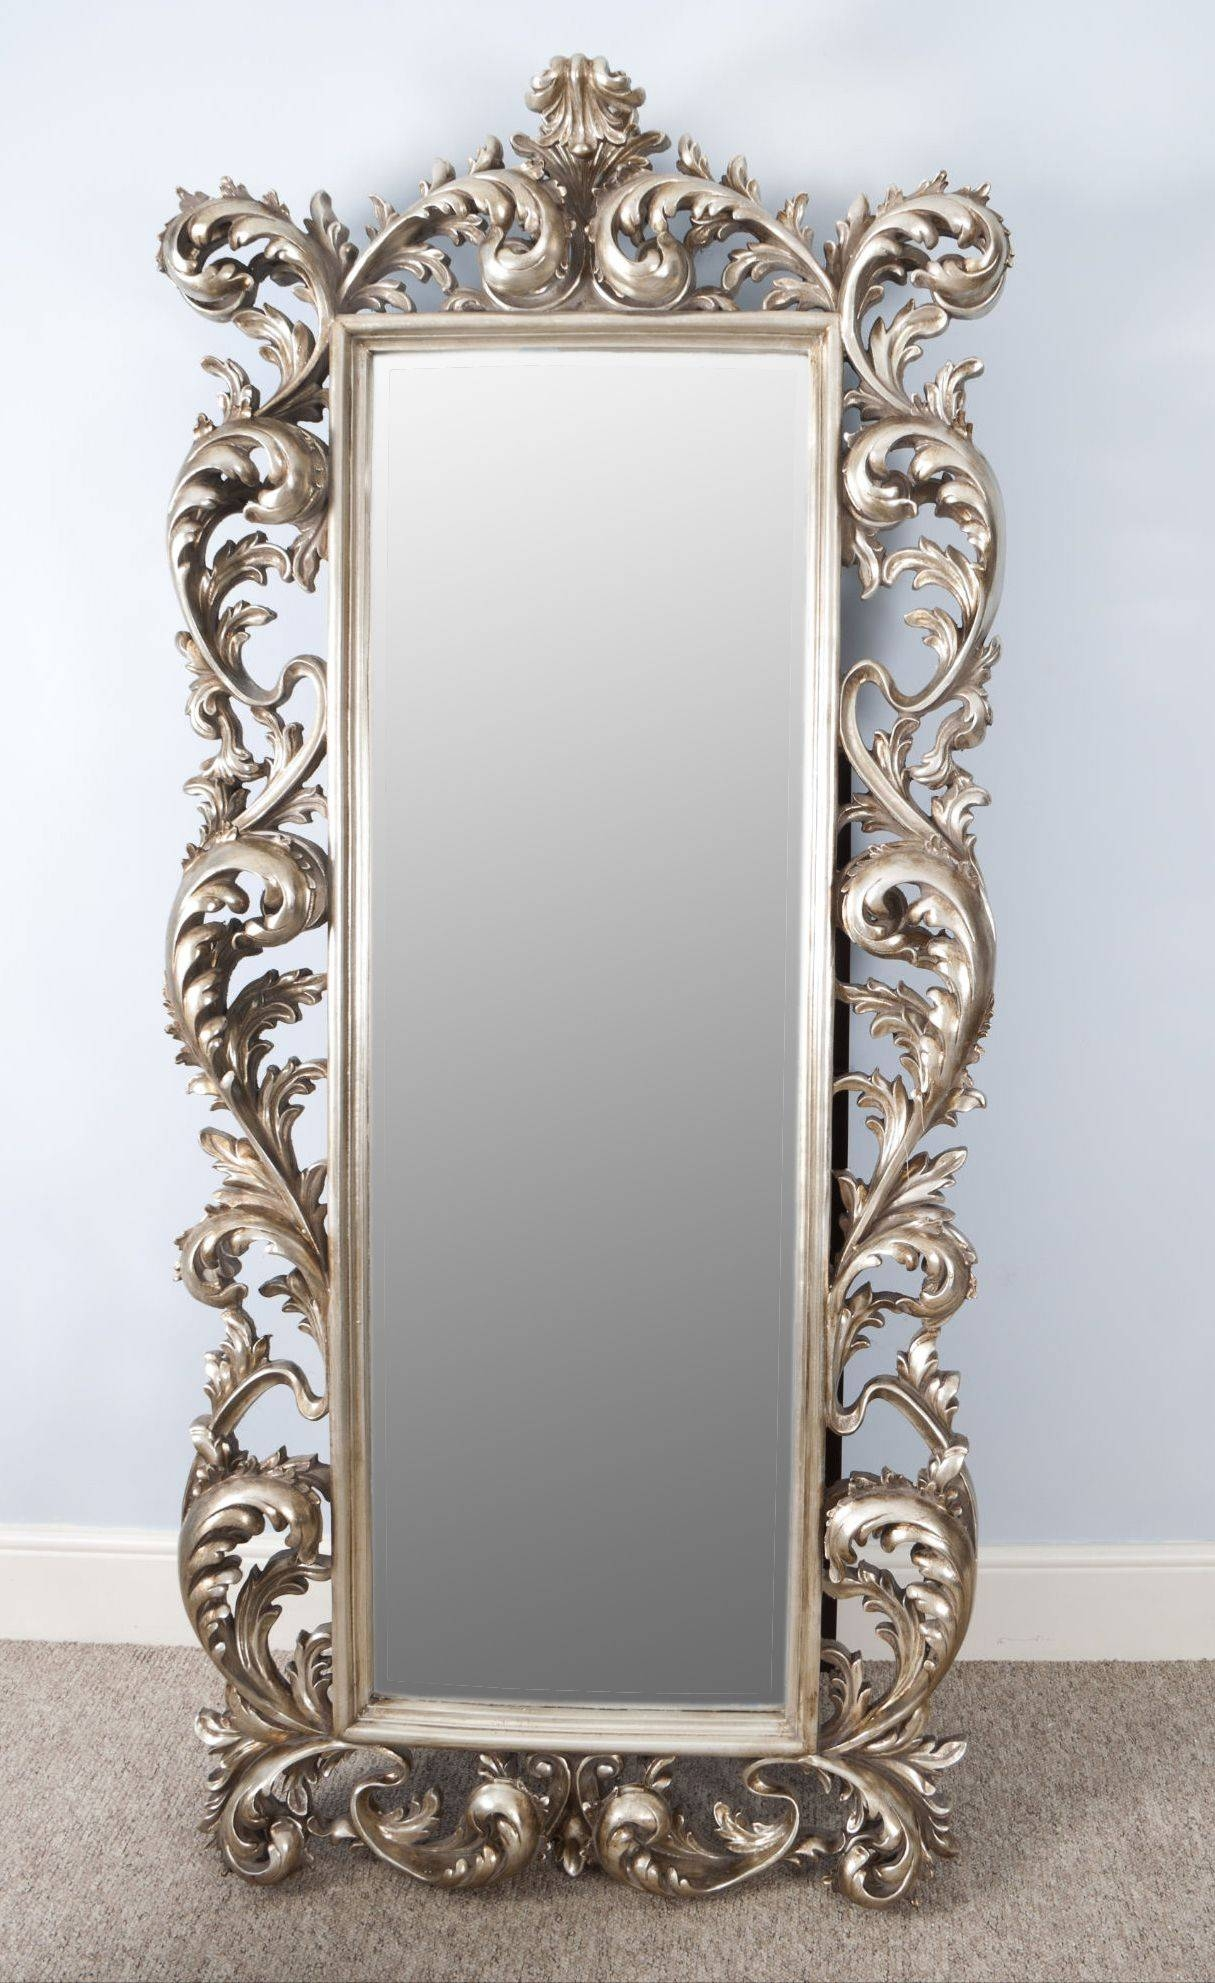 Classic Impression On Antique Wall Mirrors | Vwho Inside Old Fashioned Wall Mirrors (Photo 2 of 15)